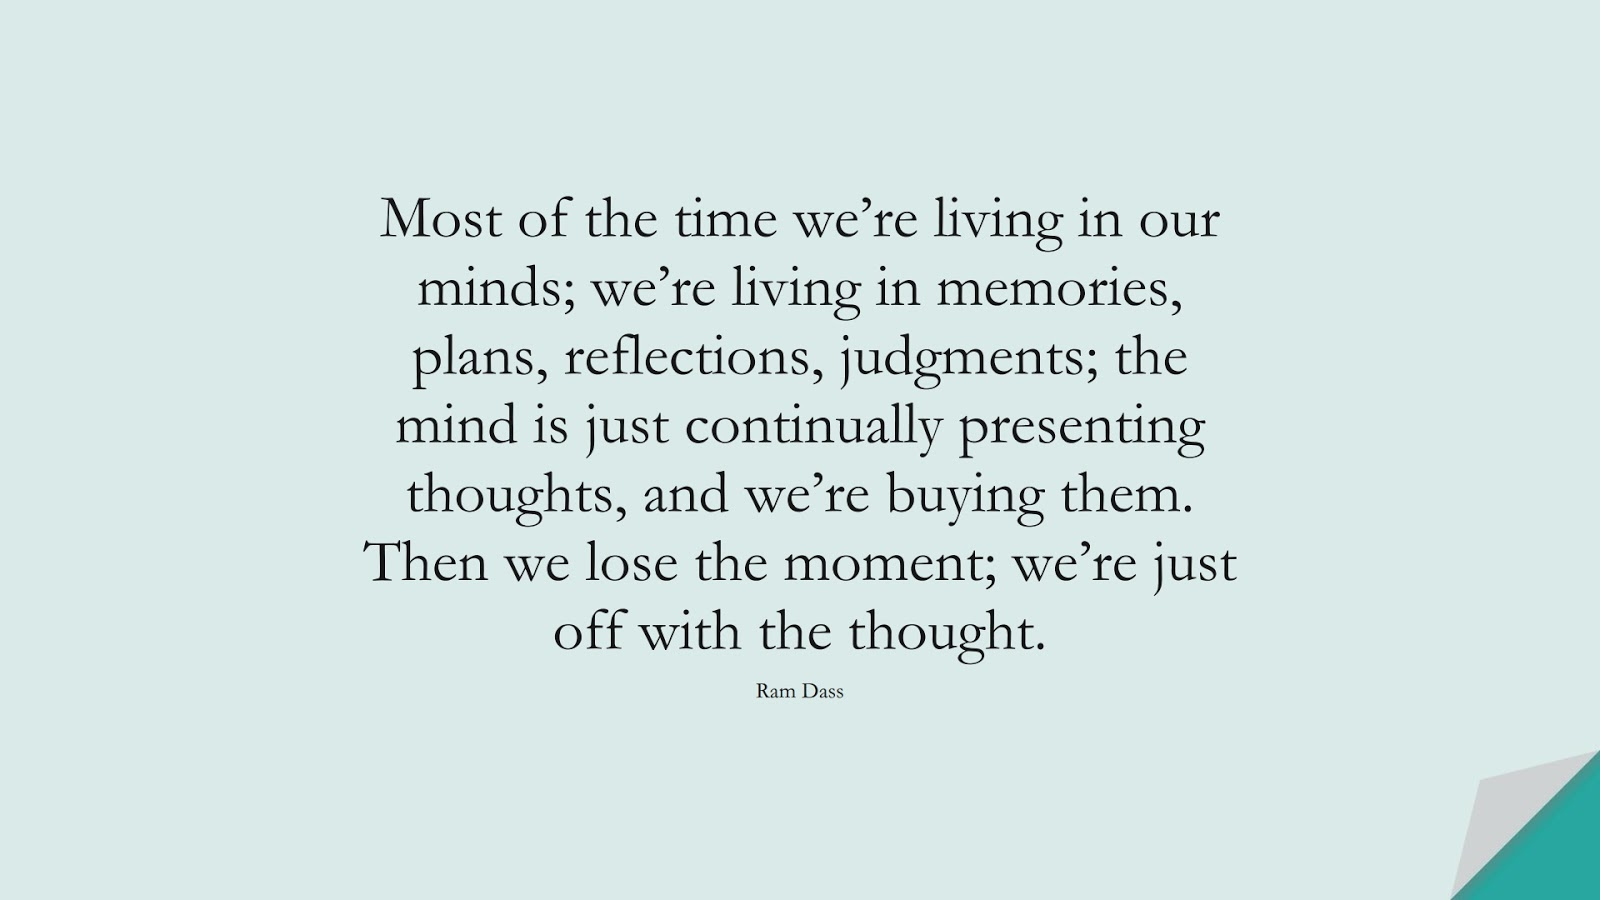 Most of the time we're living in our minds; we're living in memories, plans, reflections, judgments; the mind is just continually presenting thoughts, and we're buying them. Then we lose the moment; we're just off with the thought. (Ram Dass);  #StressQuotes